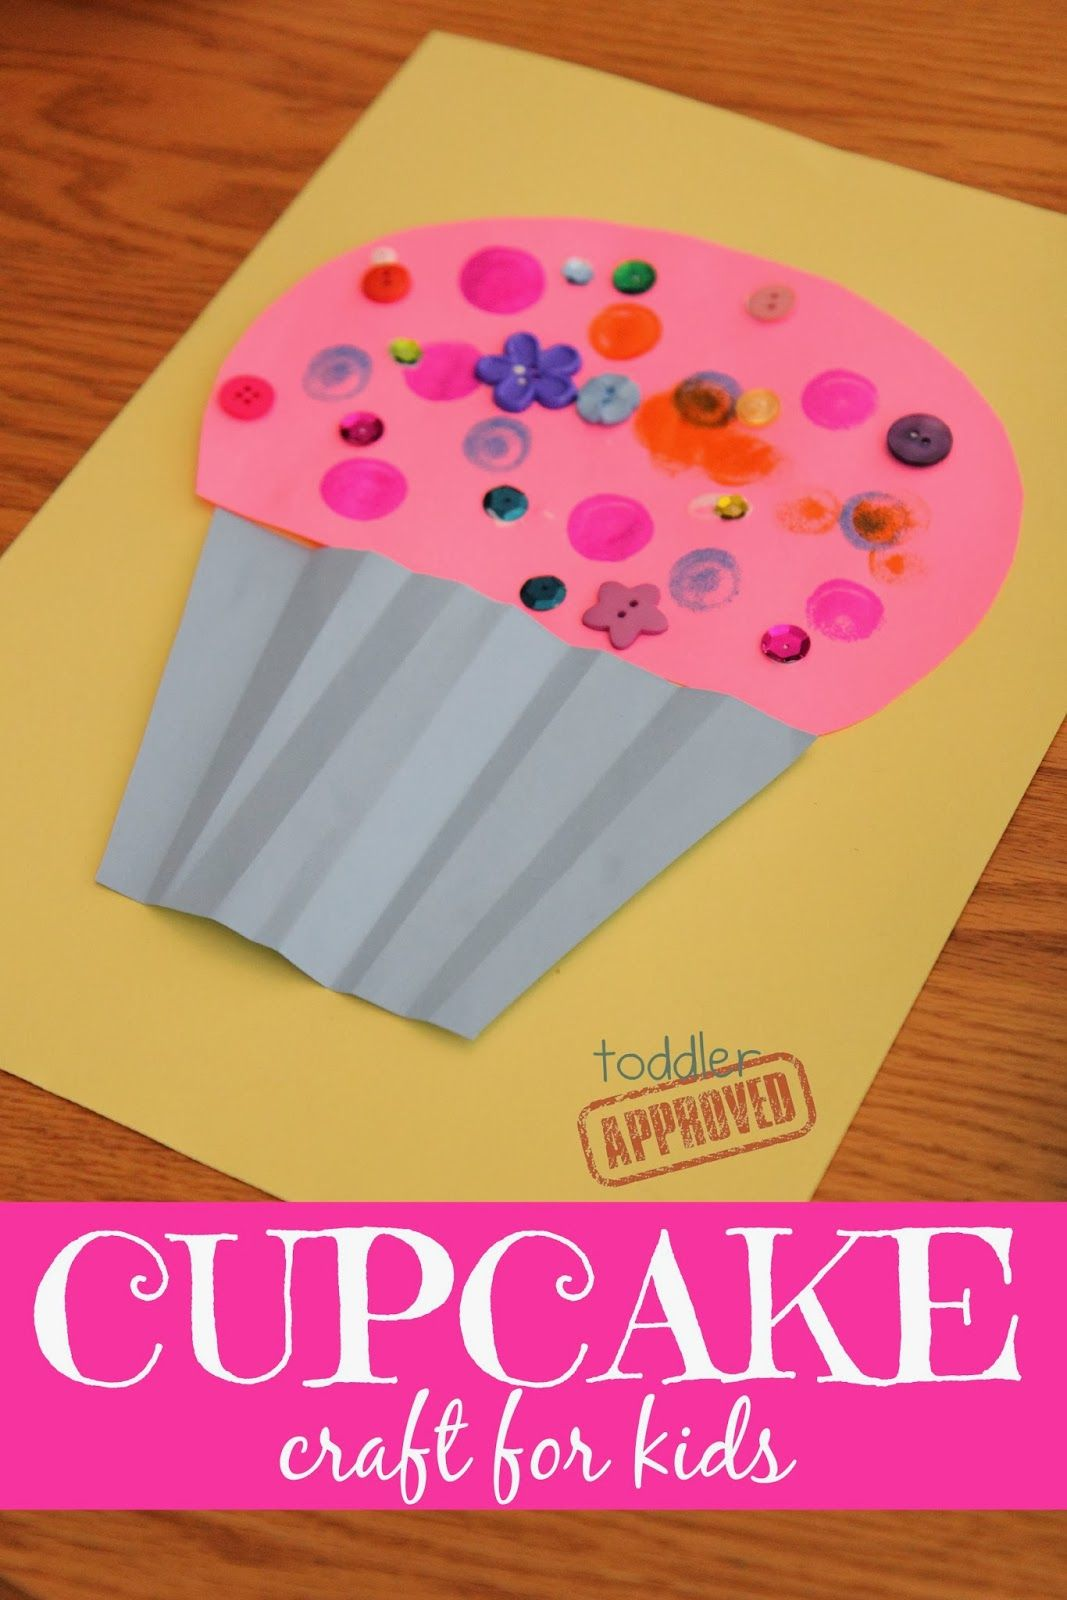 Cain and abel craft ideas - Cupcake Craft For Kids Laura Numeroff Virtual Book Club For Kids Blog Hop